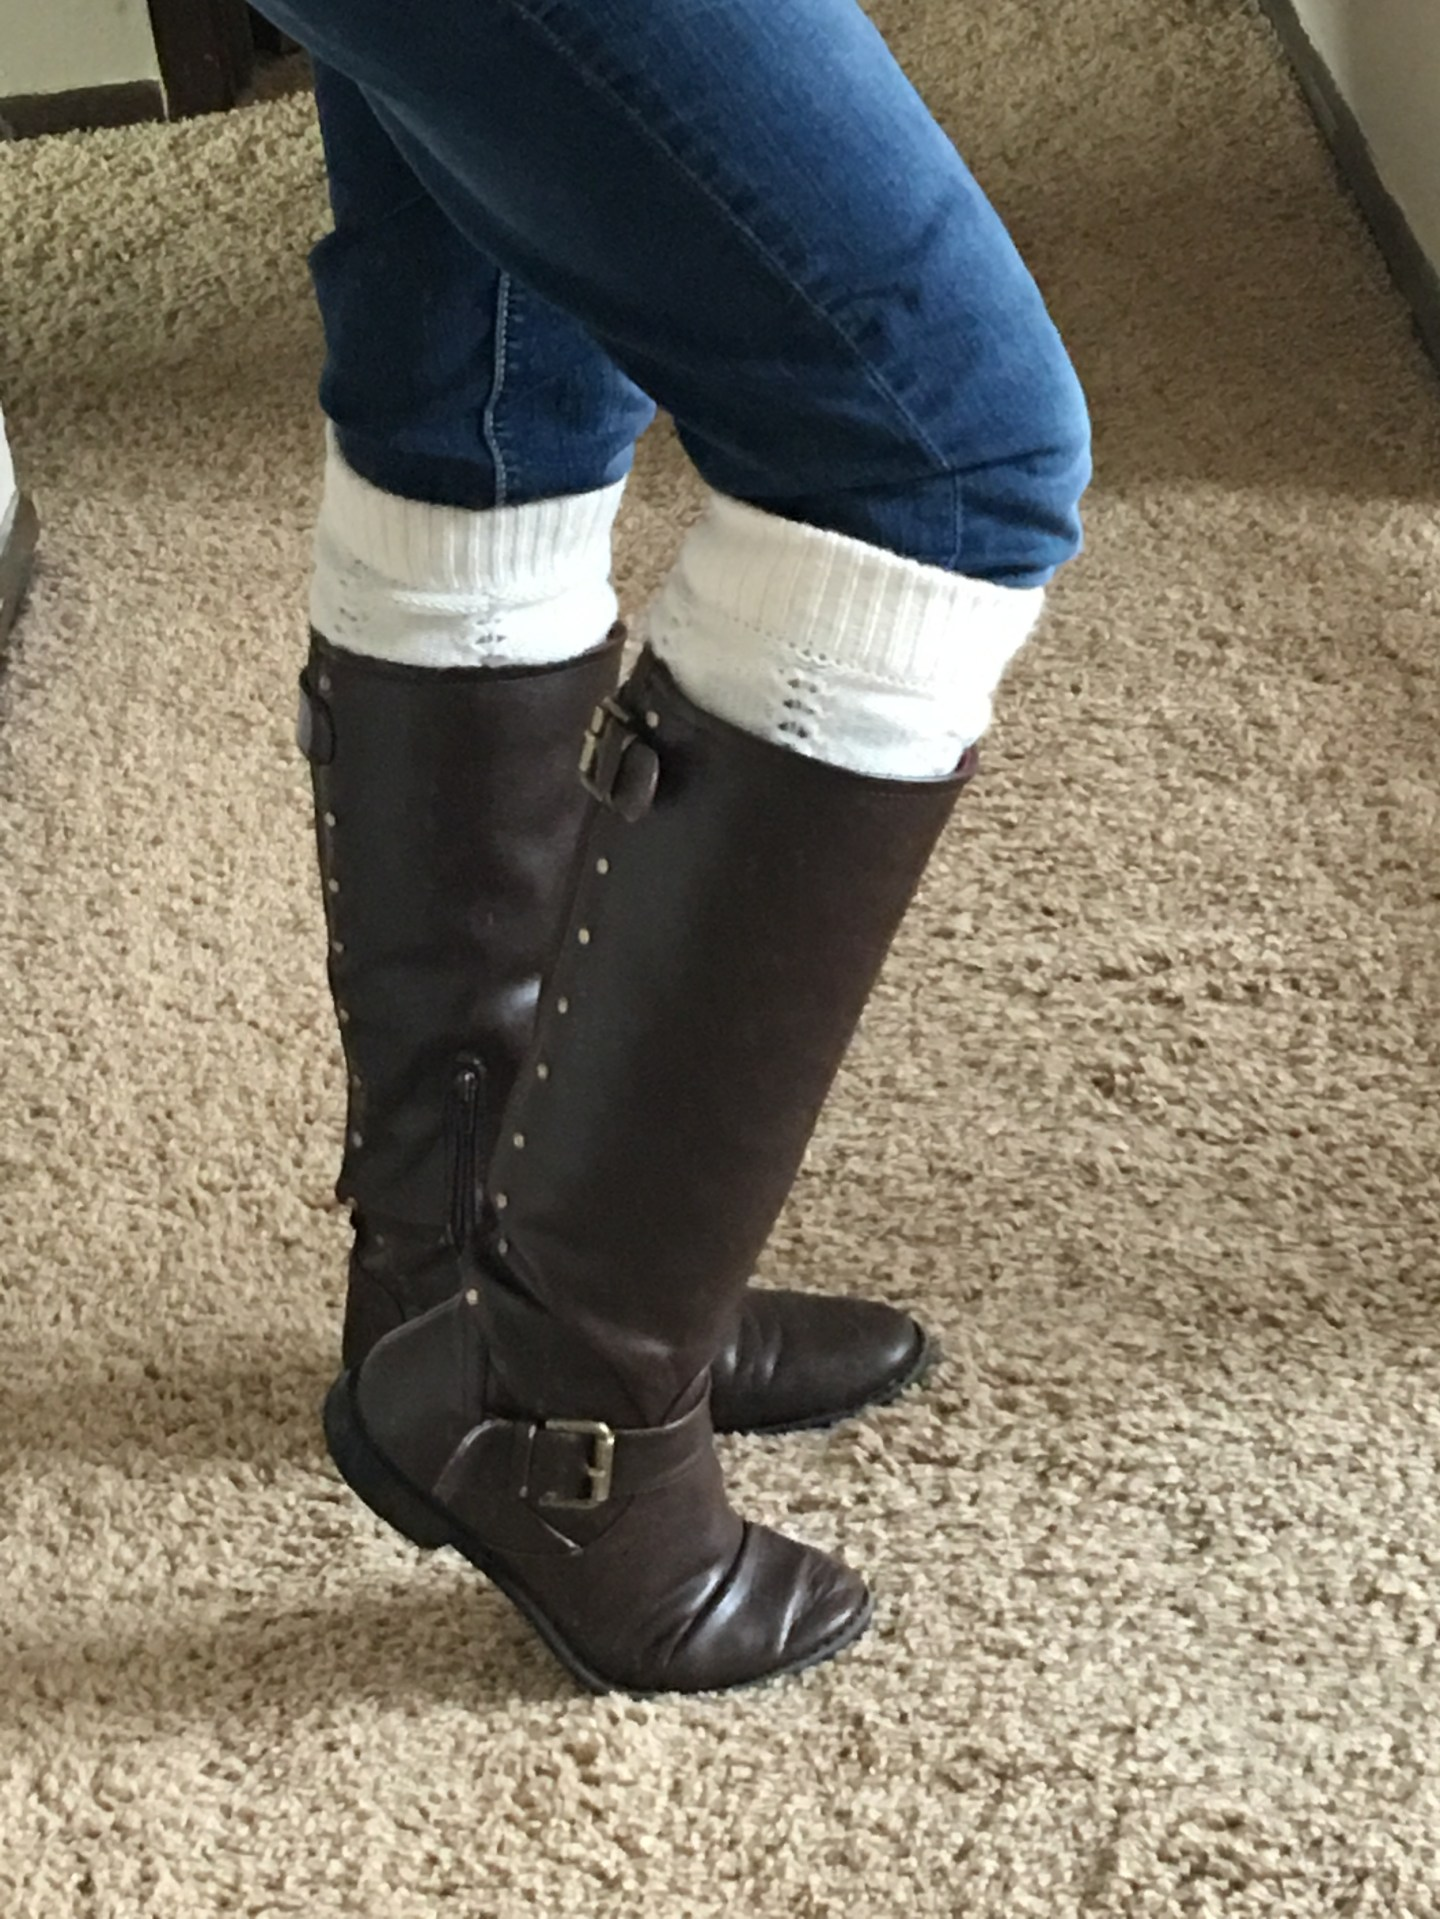 Boots from DSW, Leg warmers, and Blue jeans from Maurices